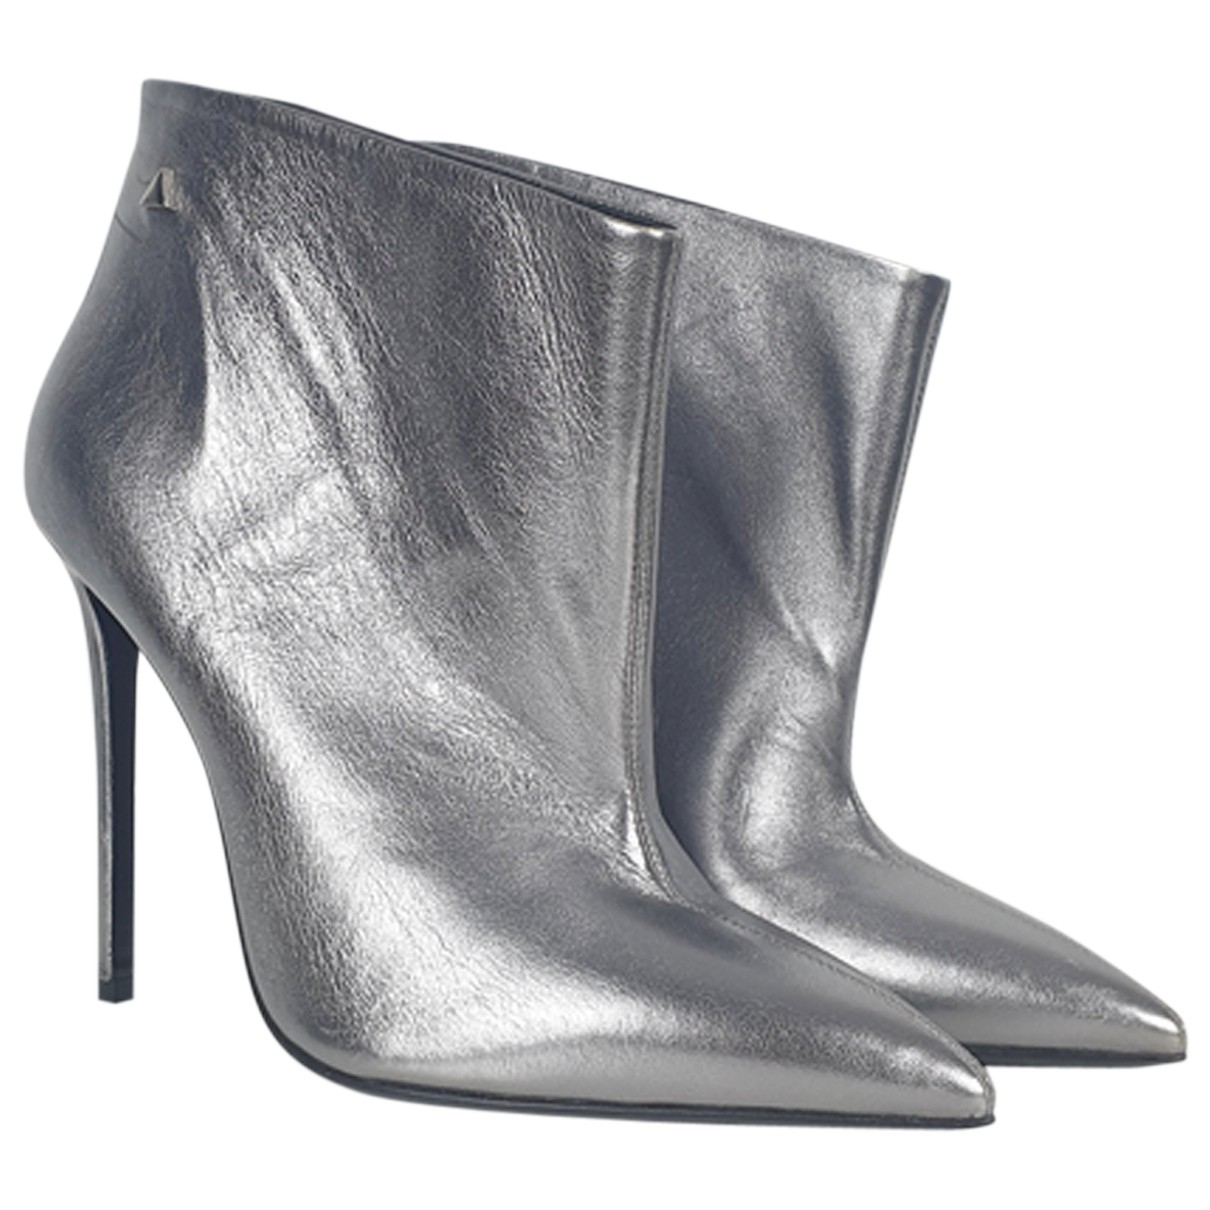 Greymer N Silver Leather Ankle boots for Women 40 IT